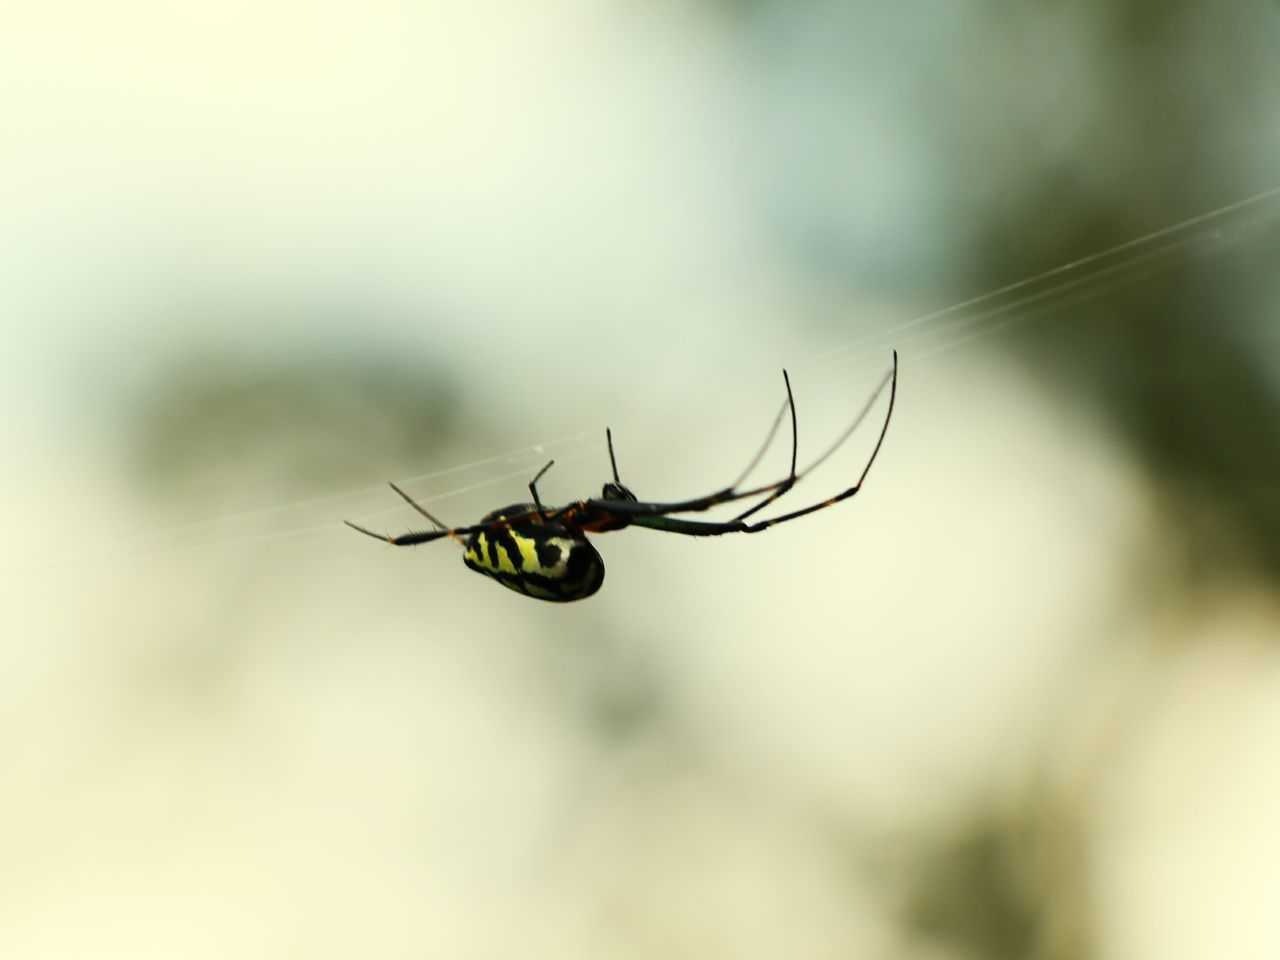 Spiderworld Shades Of Nature Shades Of The Sky Colour Composotions Nature_collection Tiny